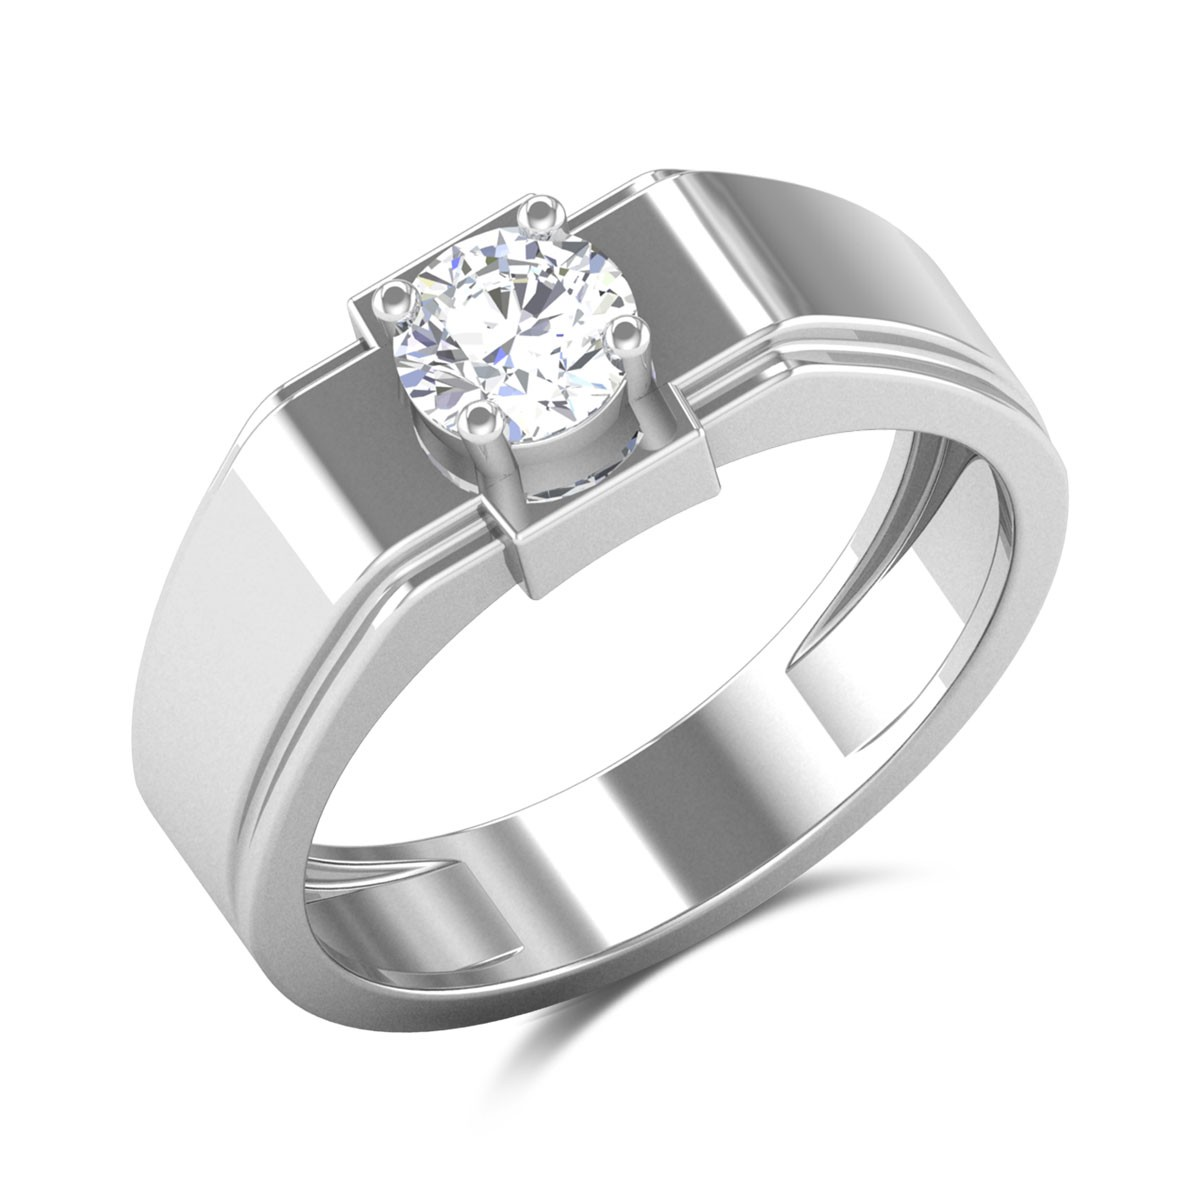 Neema 4 Prong Solitaire Ring